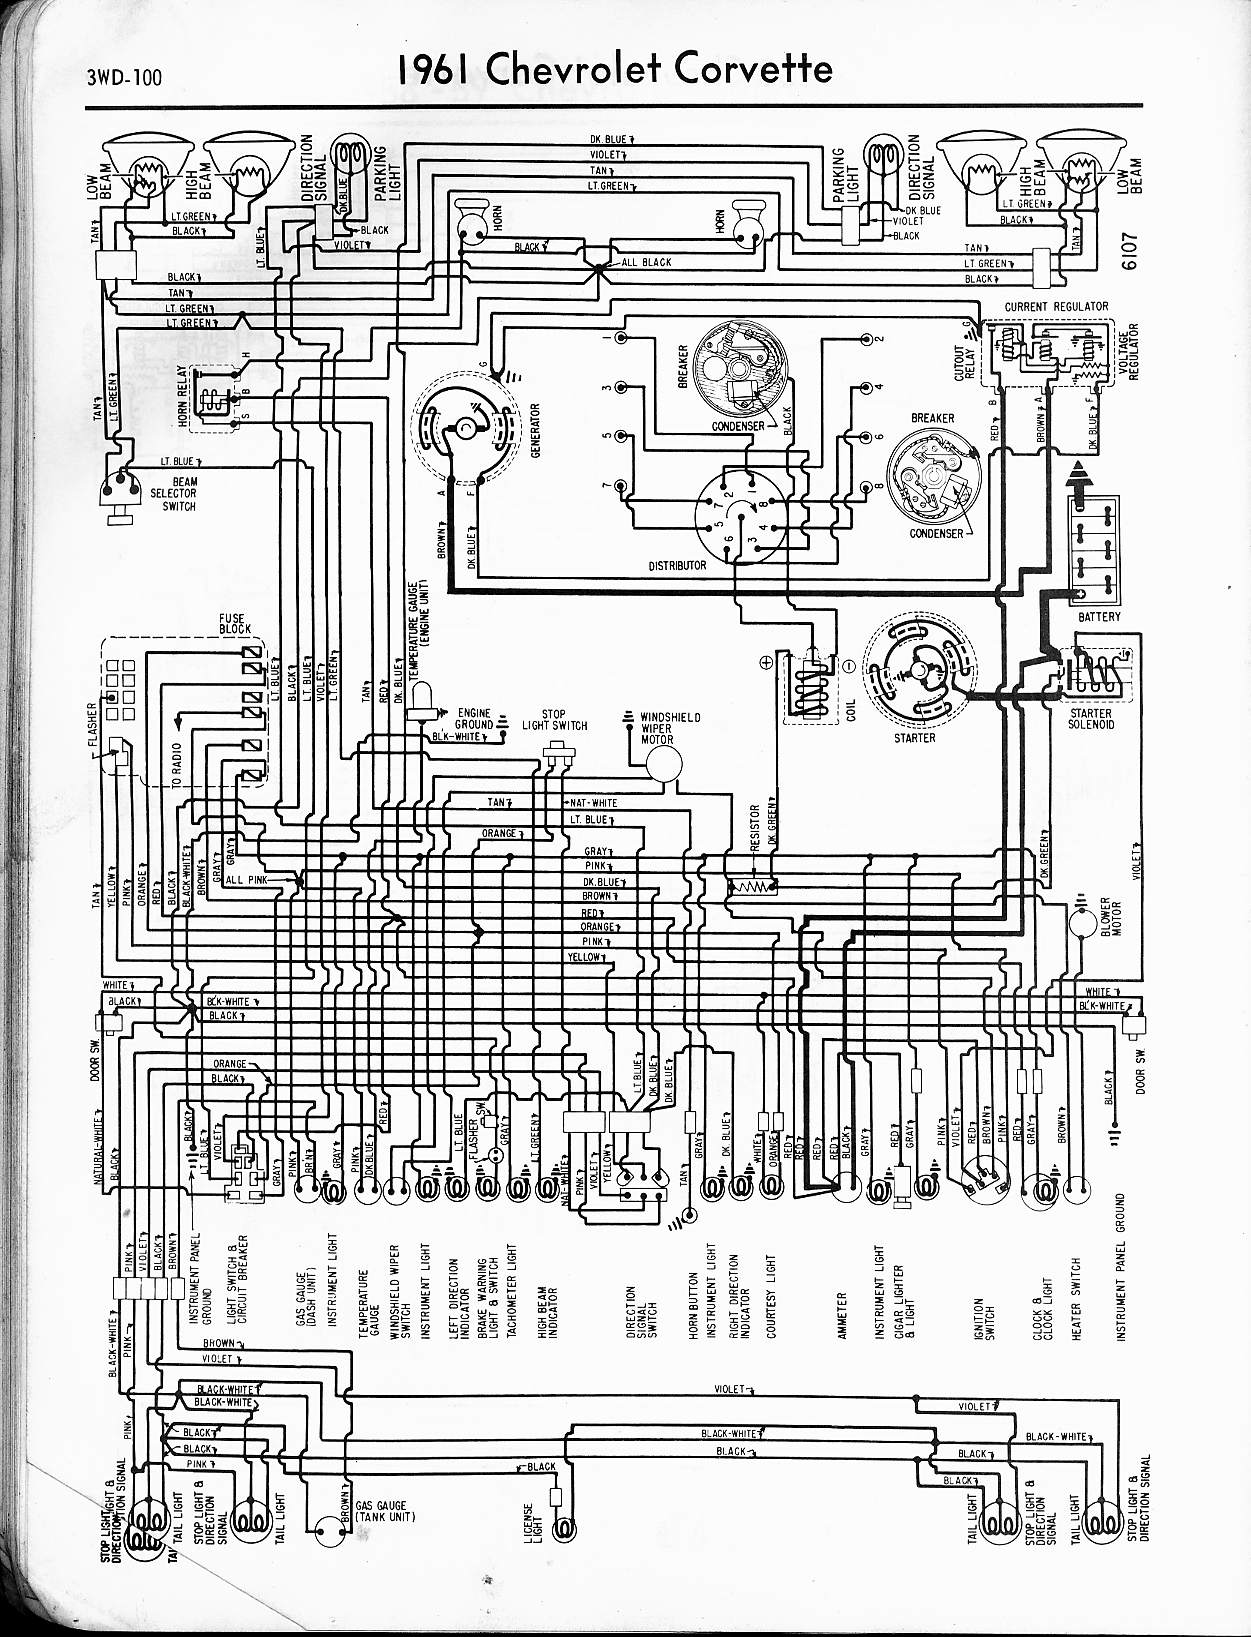 1960 triumph wiring diagram wiring diagram 1960 triumph wiring diagram images gallery asfbconference2016 Choice Image